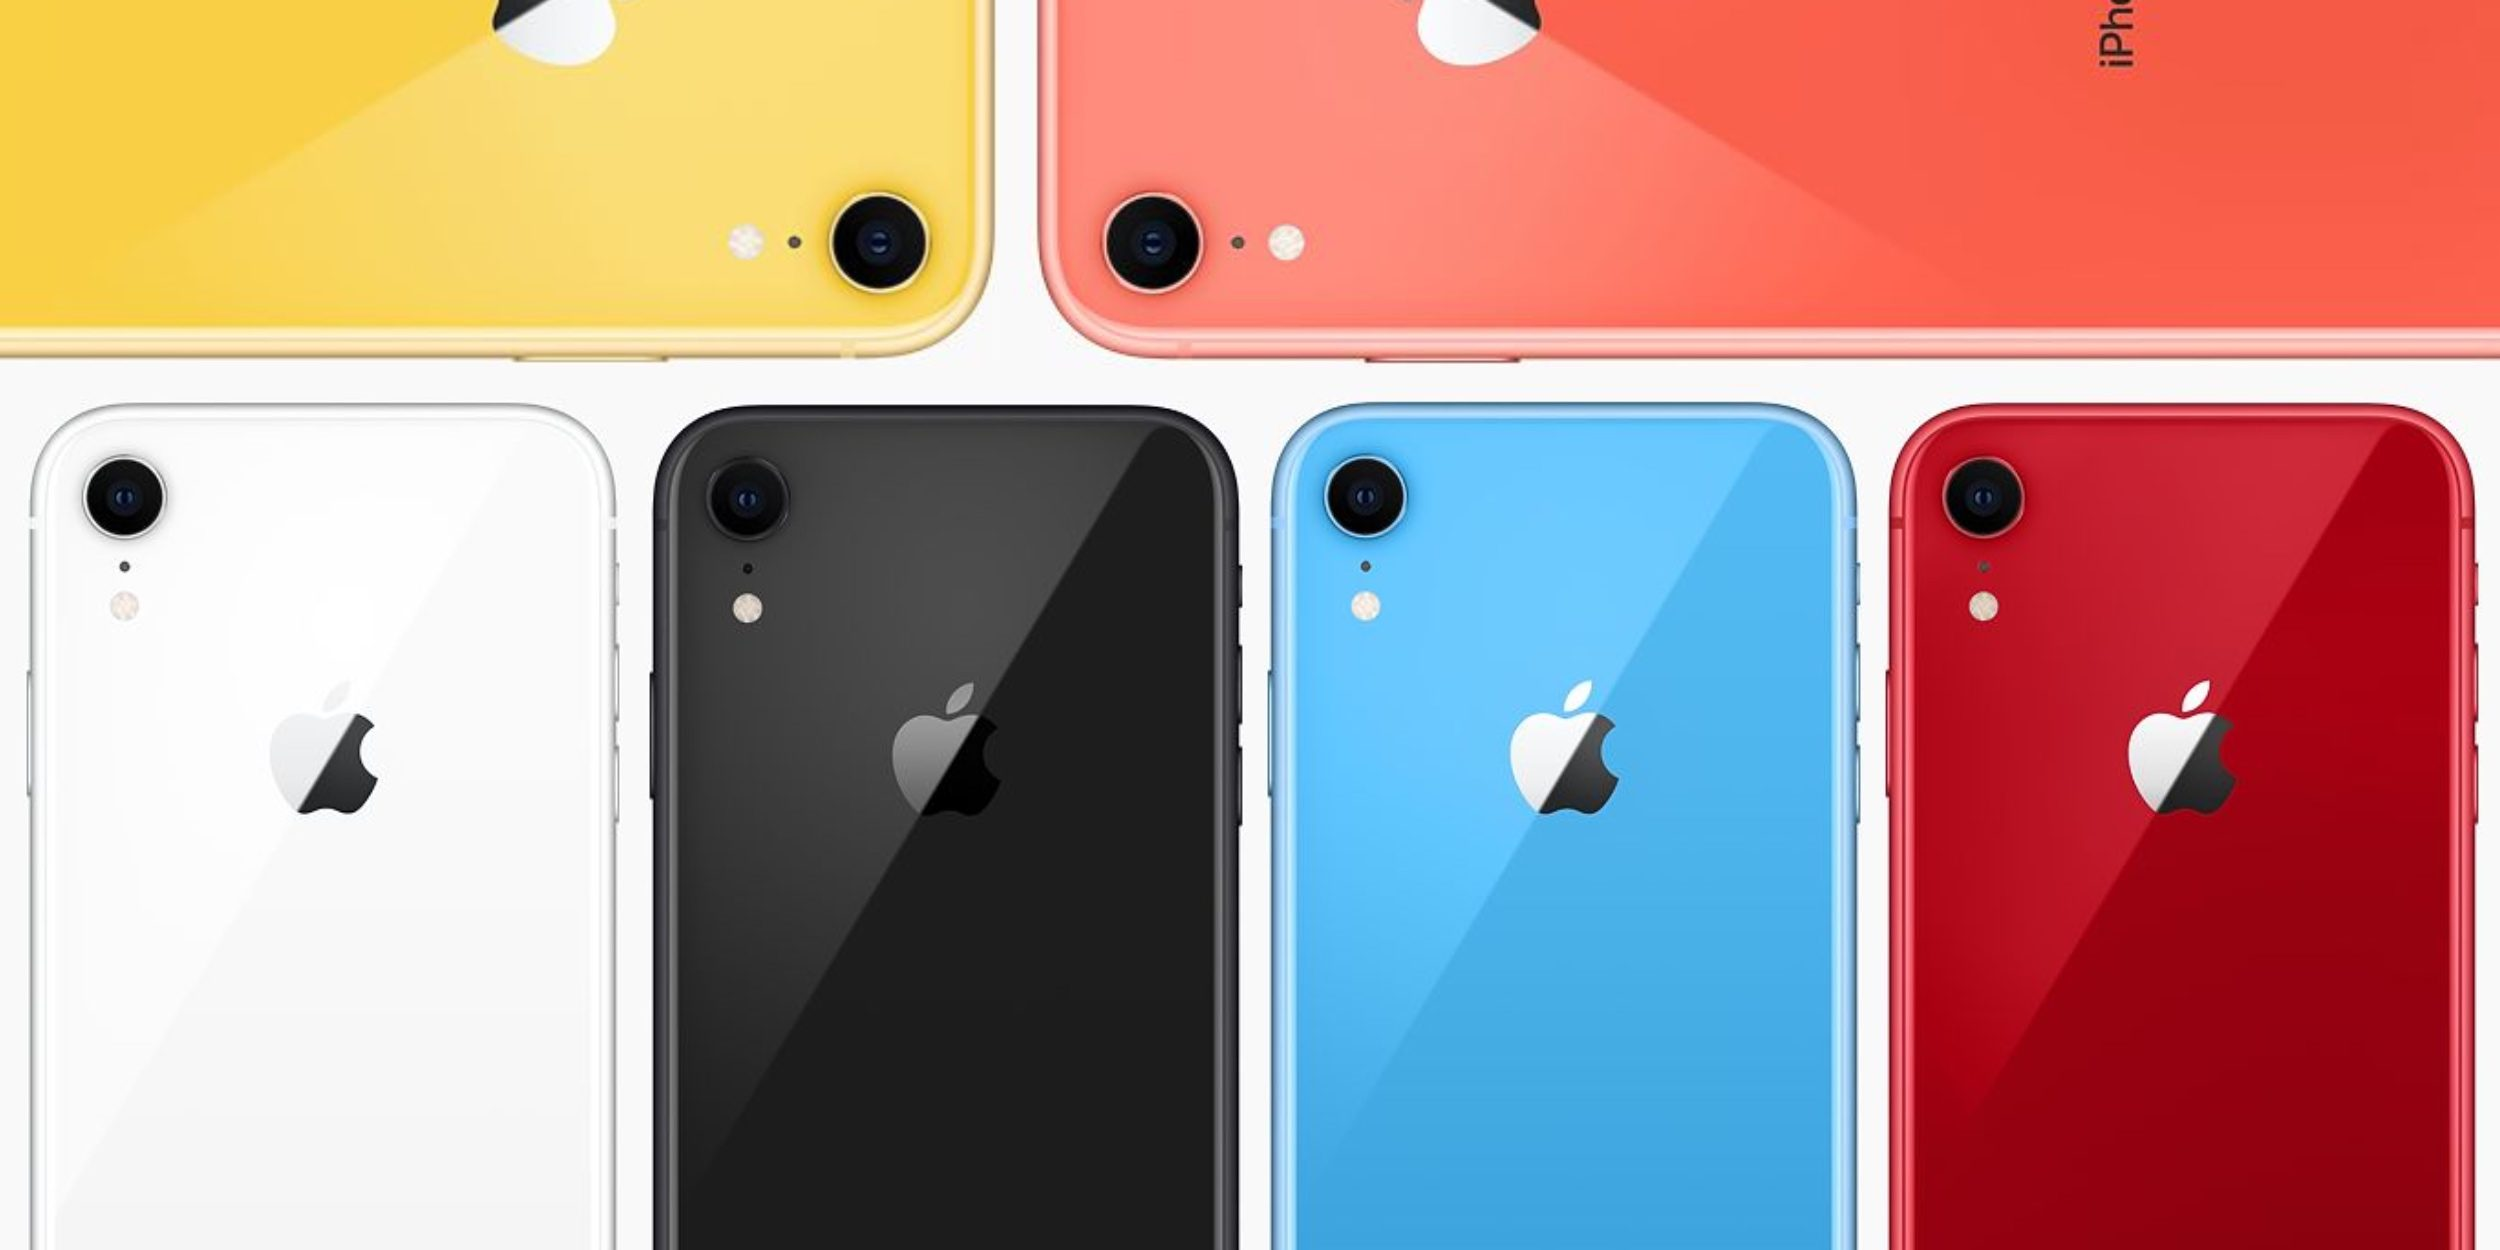 iPhone XR was $ 100 cheaper, but only in Japan